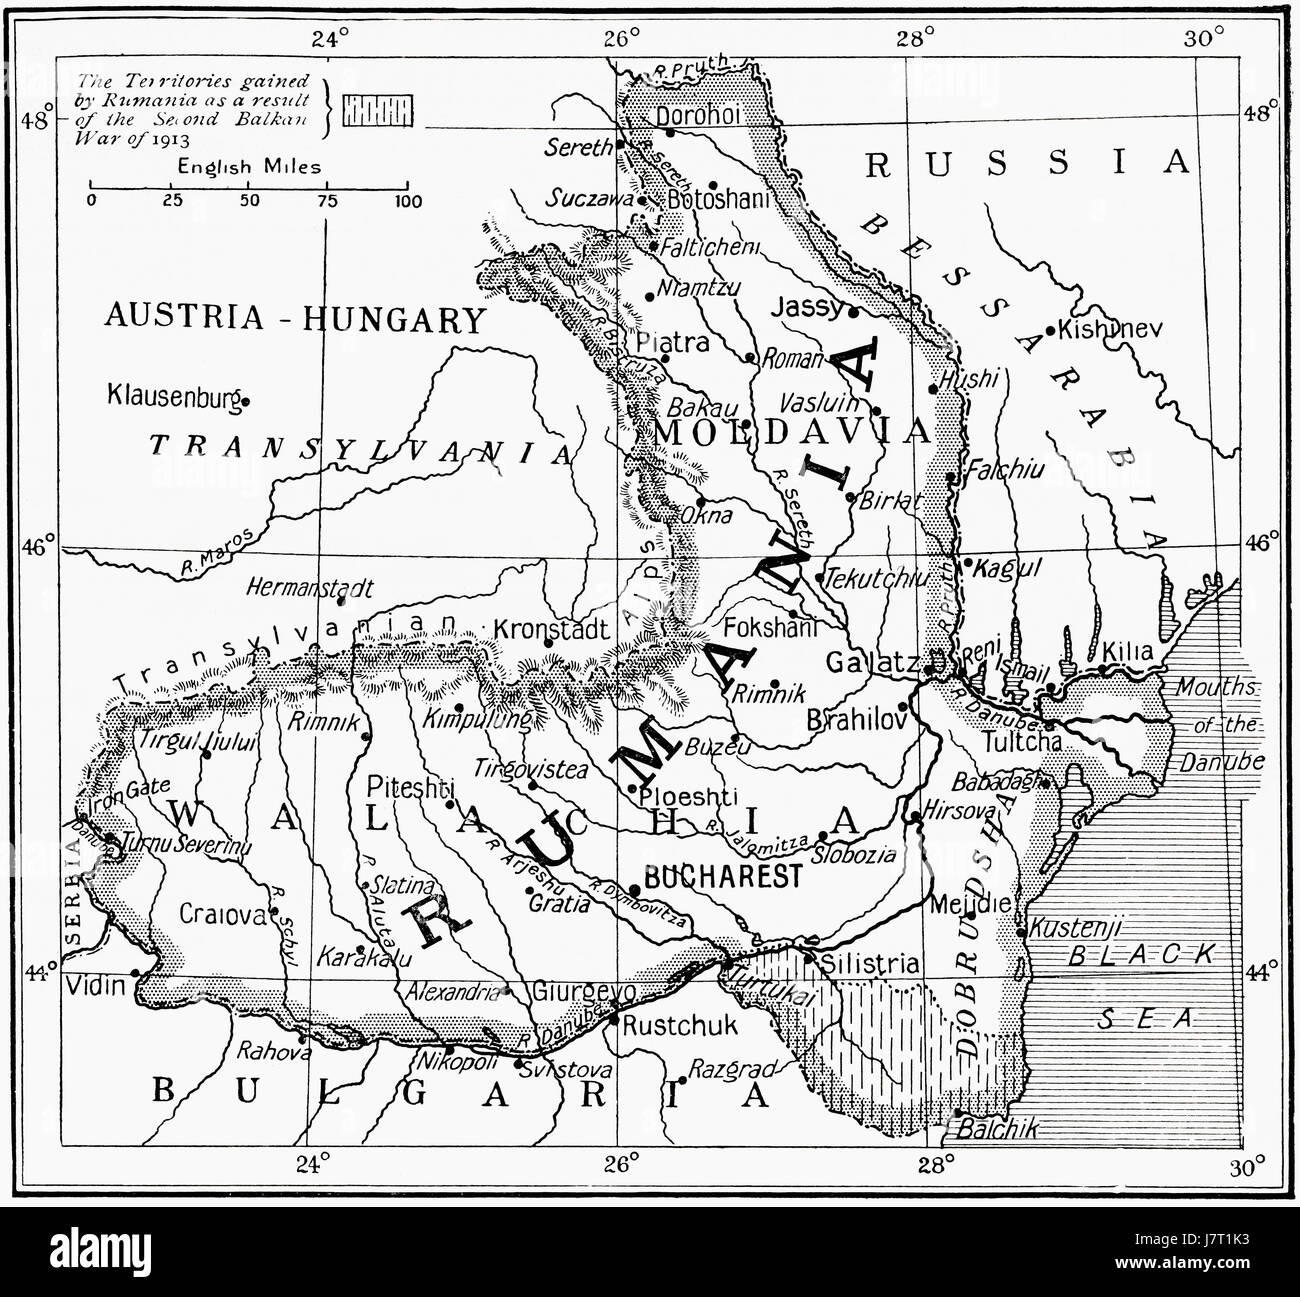 Map of Romania at the outbreak of WWI. From Hutchinson's History of the Nations, published 1915. - Stock Image